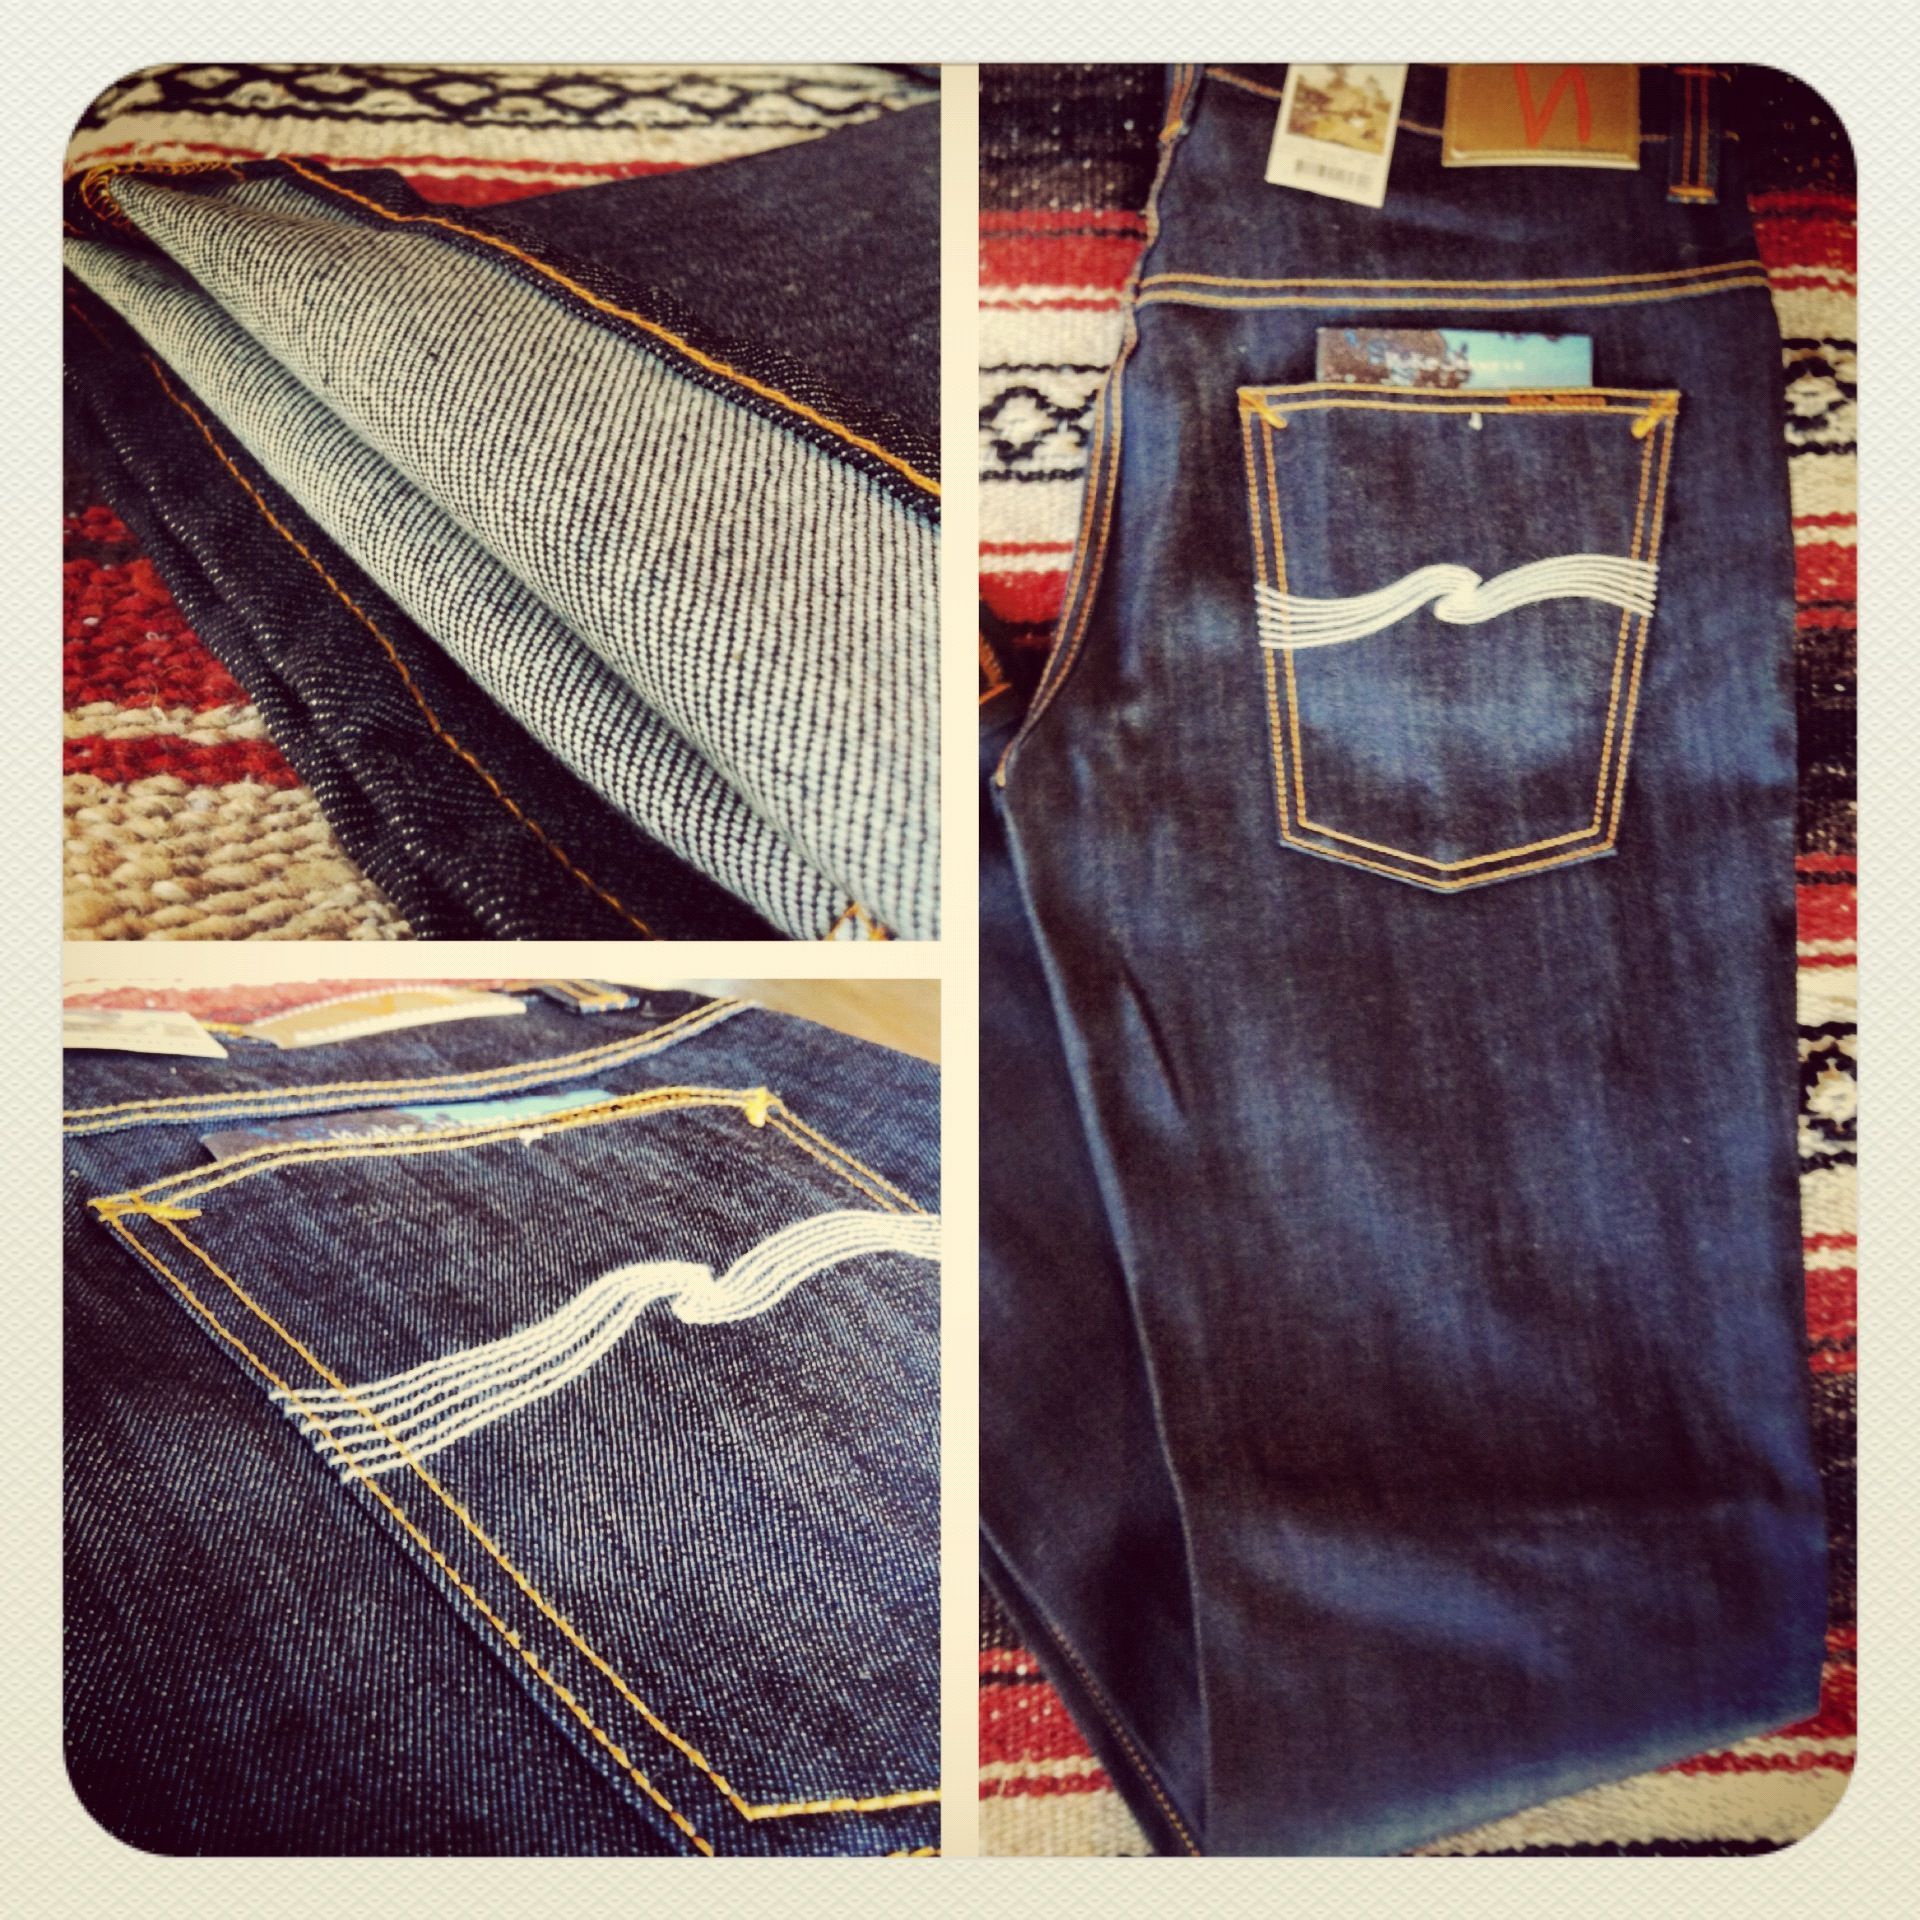 Blog - NRML INTRODUCES: NUDIE JEANS CO. FOR MEN & WOMEN!